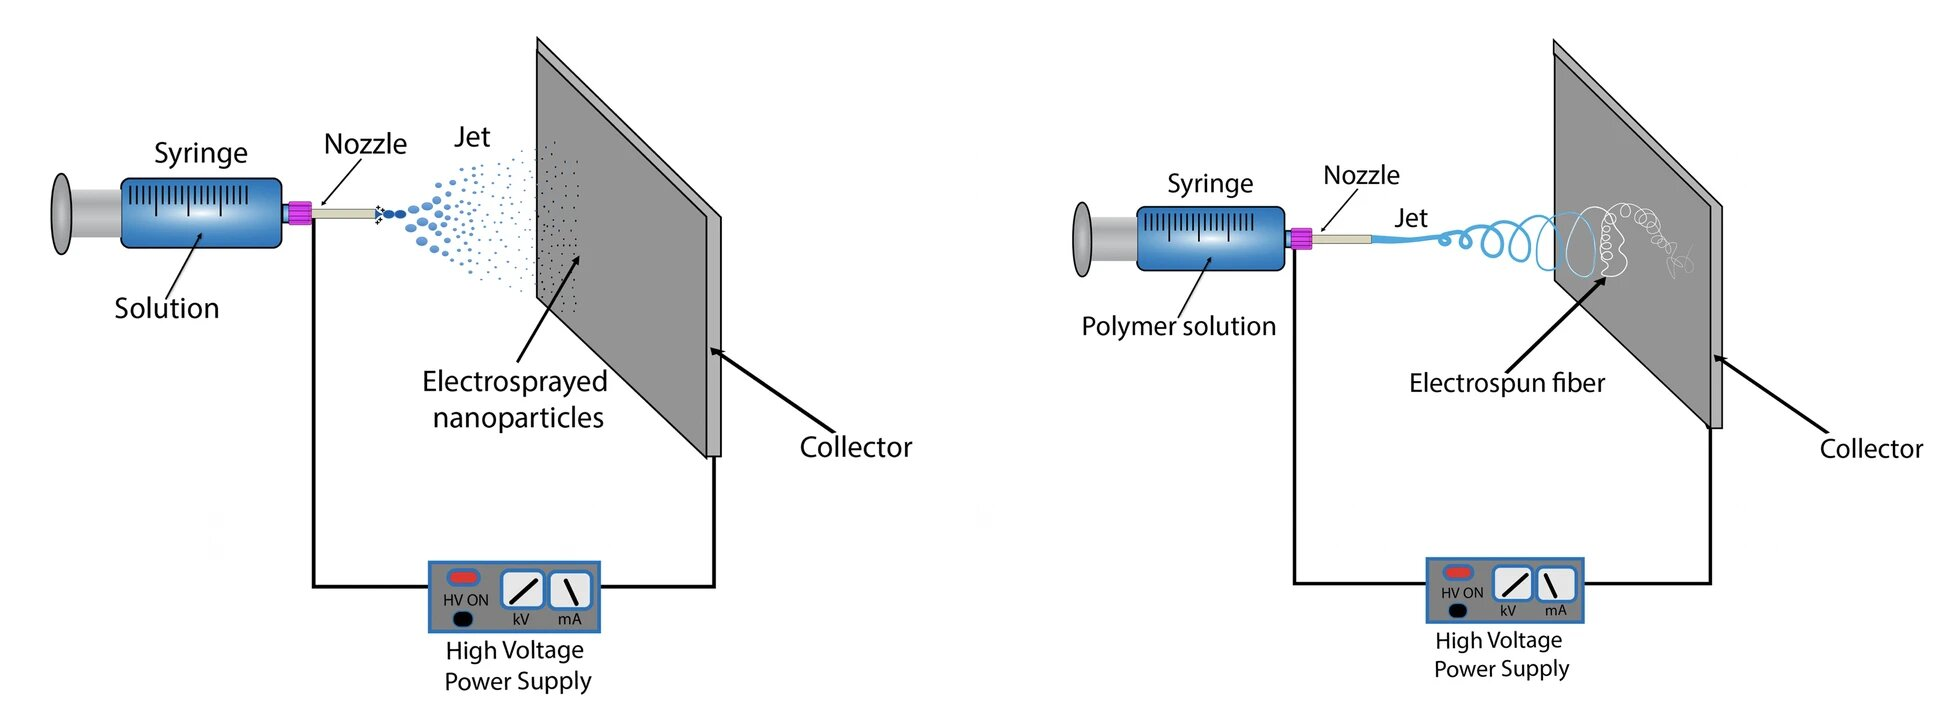 Schematic drawing of a typical electrospray setup. Right: Schematic drawing of a typical electrospinning setup. Image via 3D Printing in Medicine.